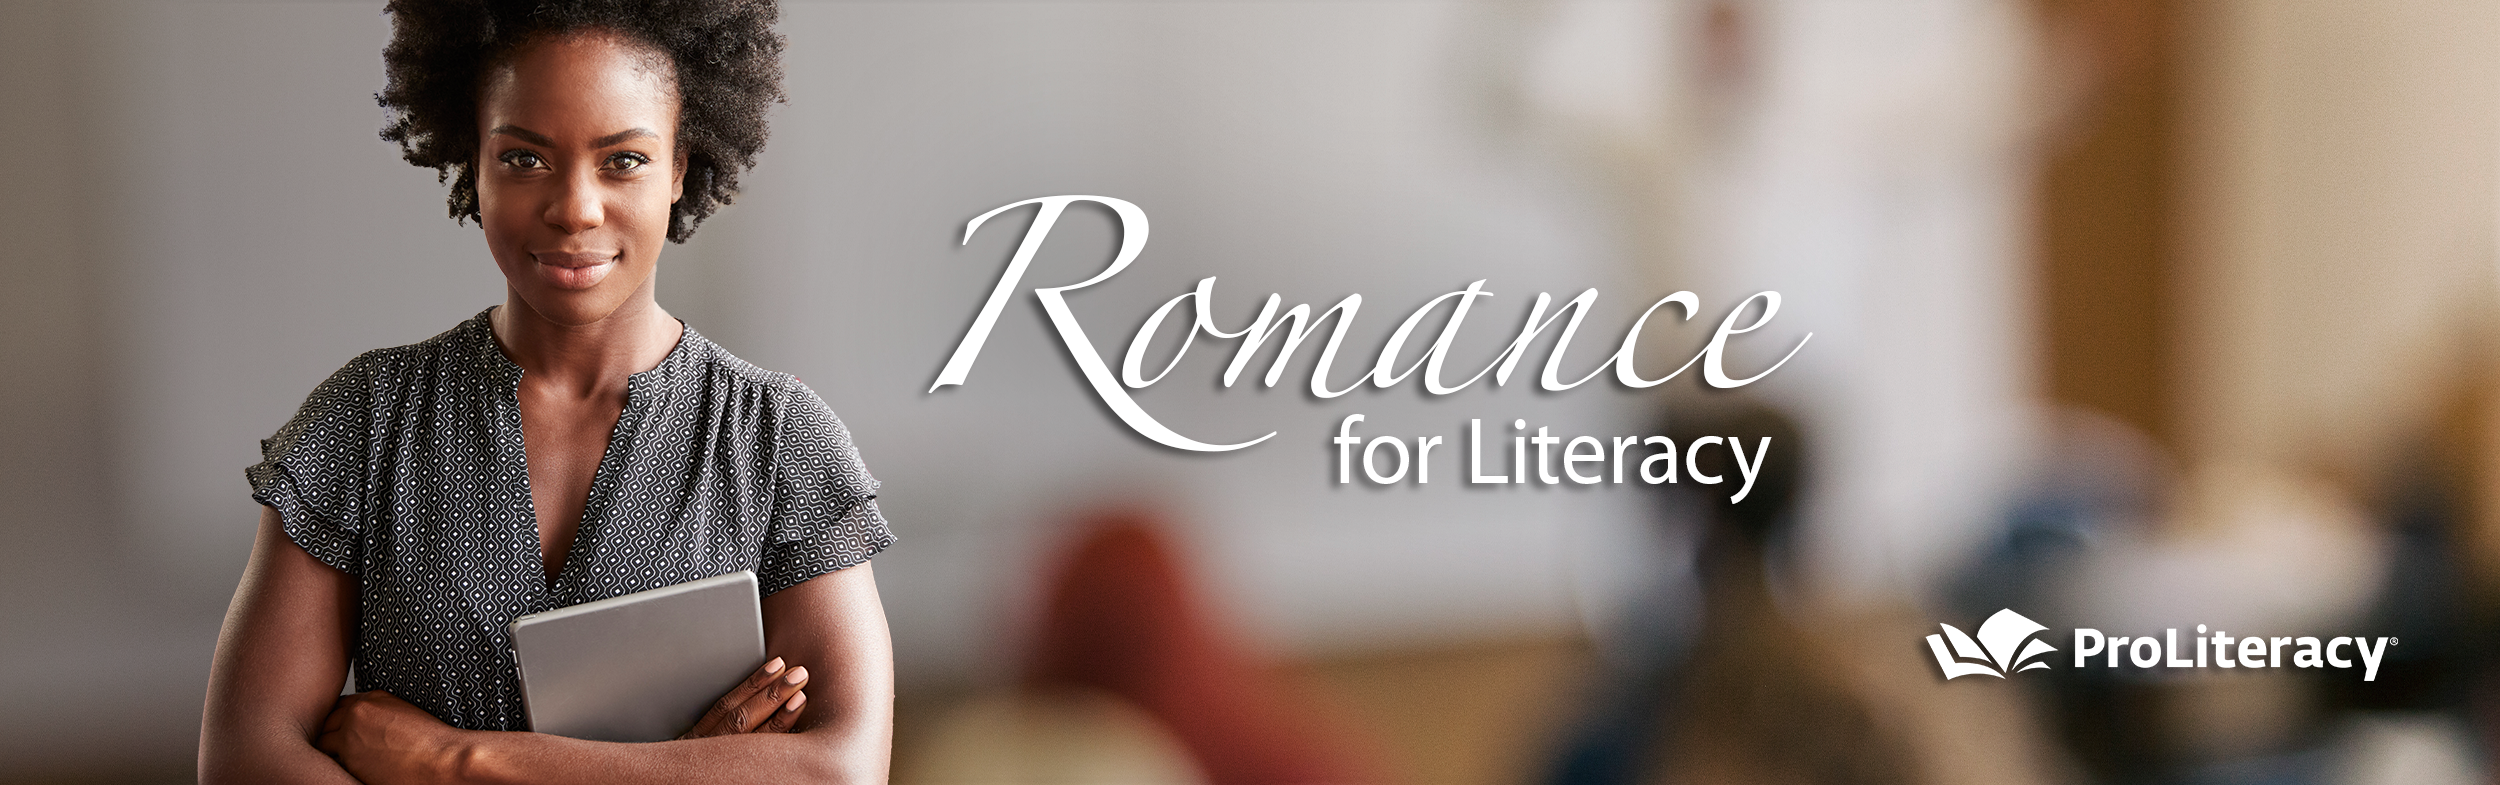 2020-02_Romance_web_pg_banner2_2500x785.png